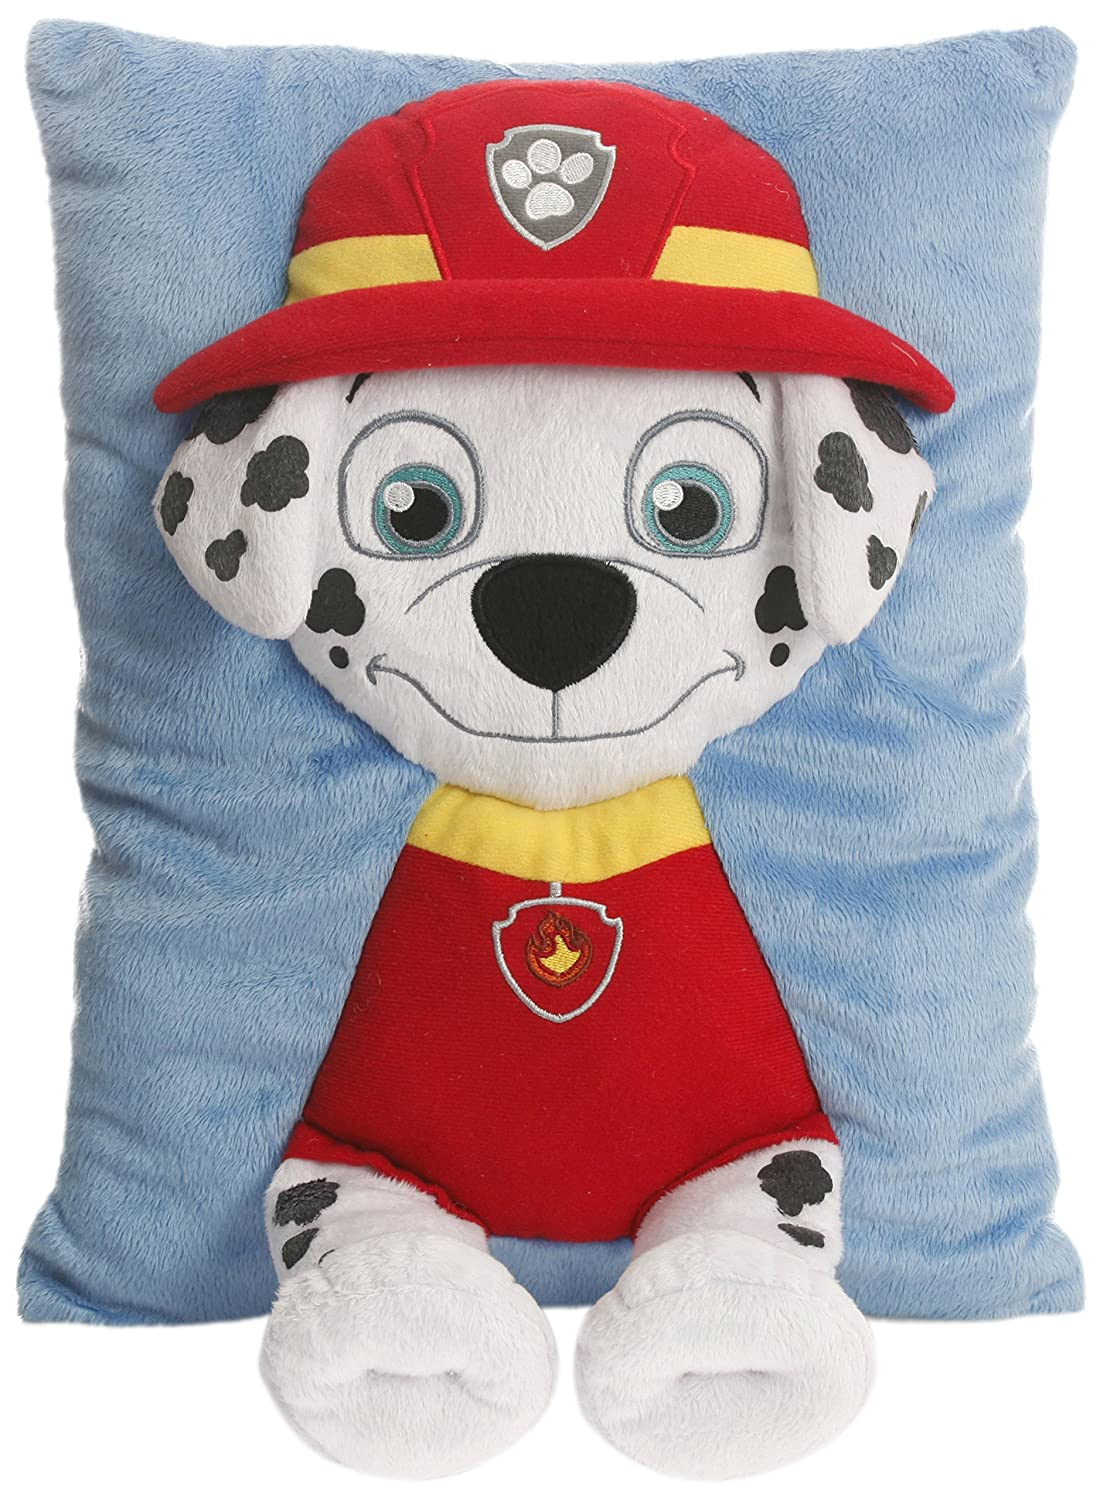 Amazon.com : Paw Patrol Marshall Decorative Pillow, Red/Black ...